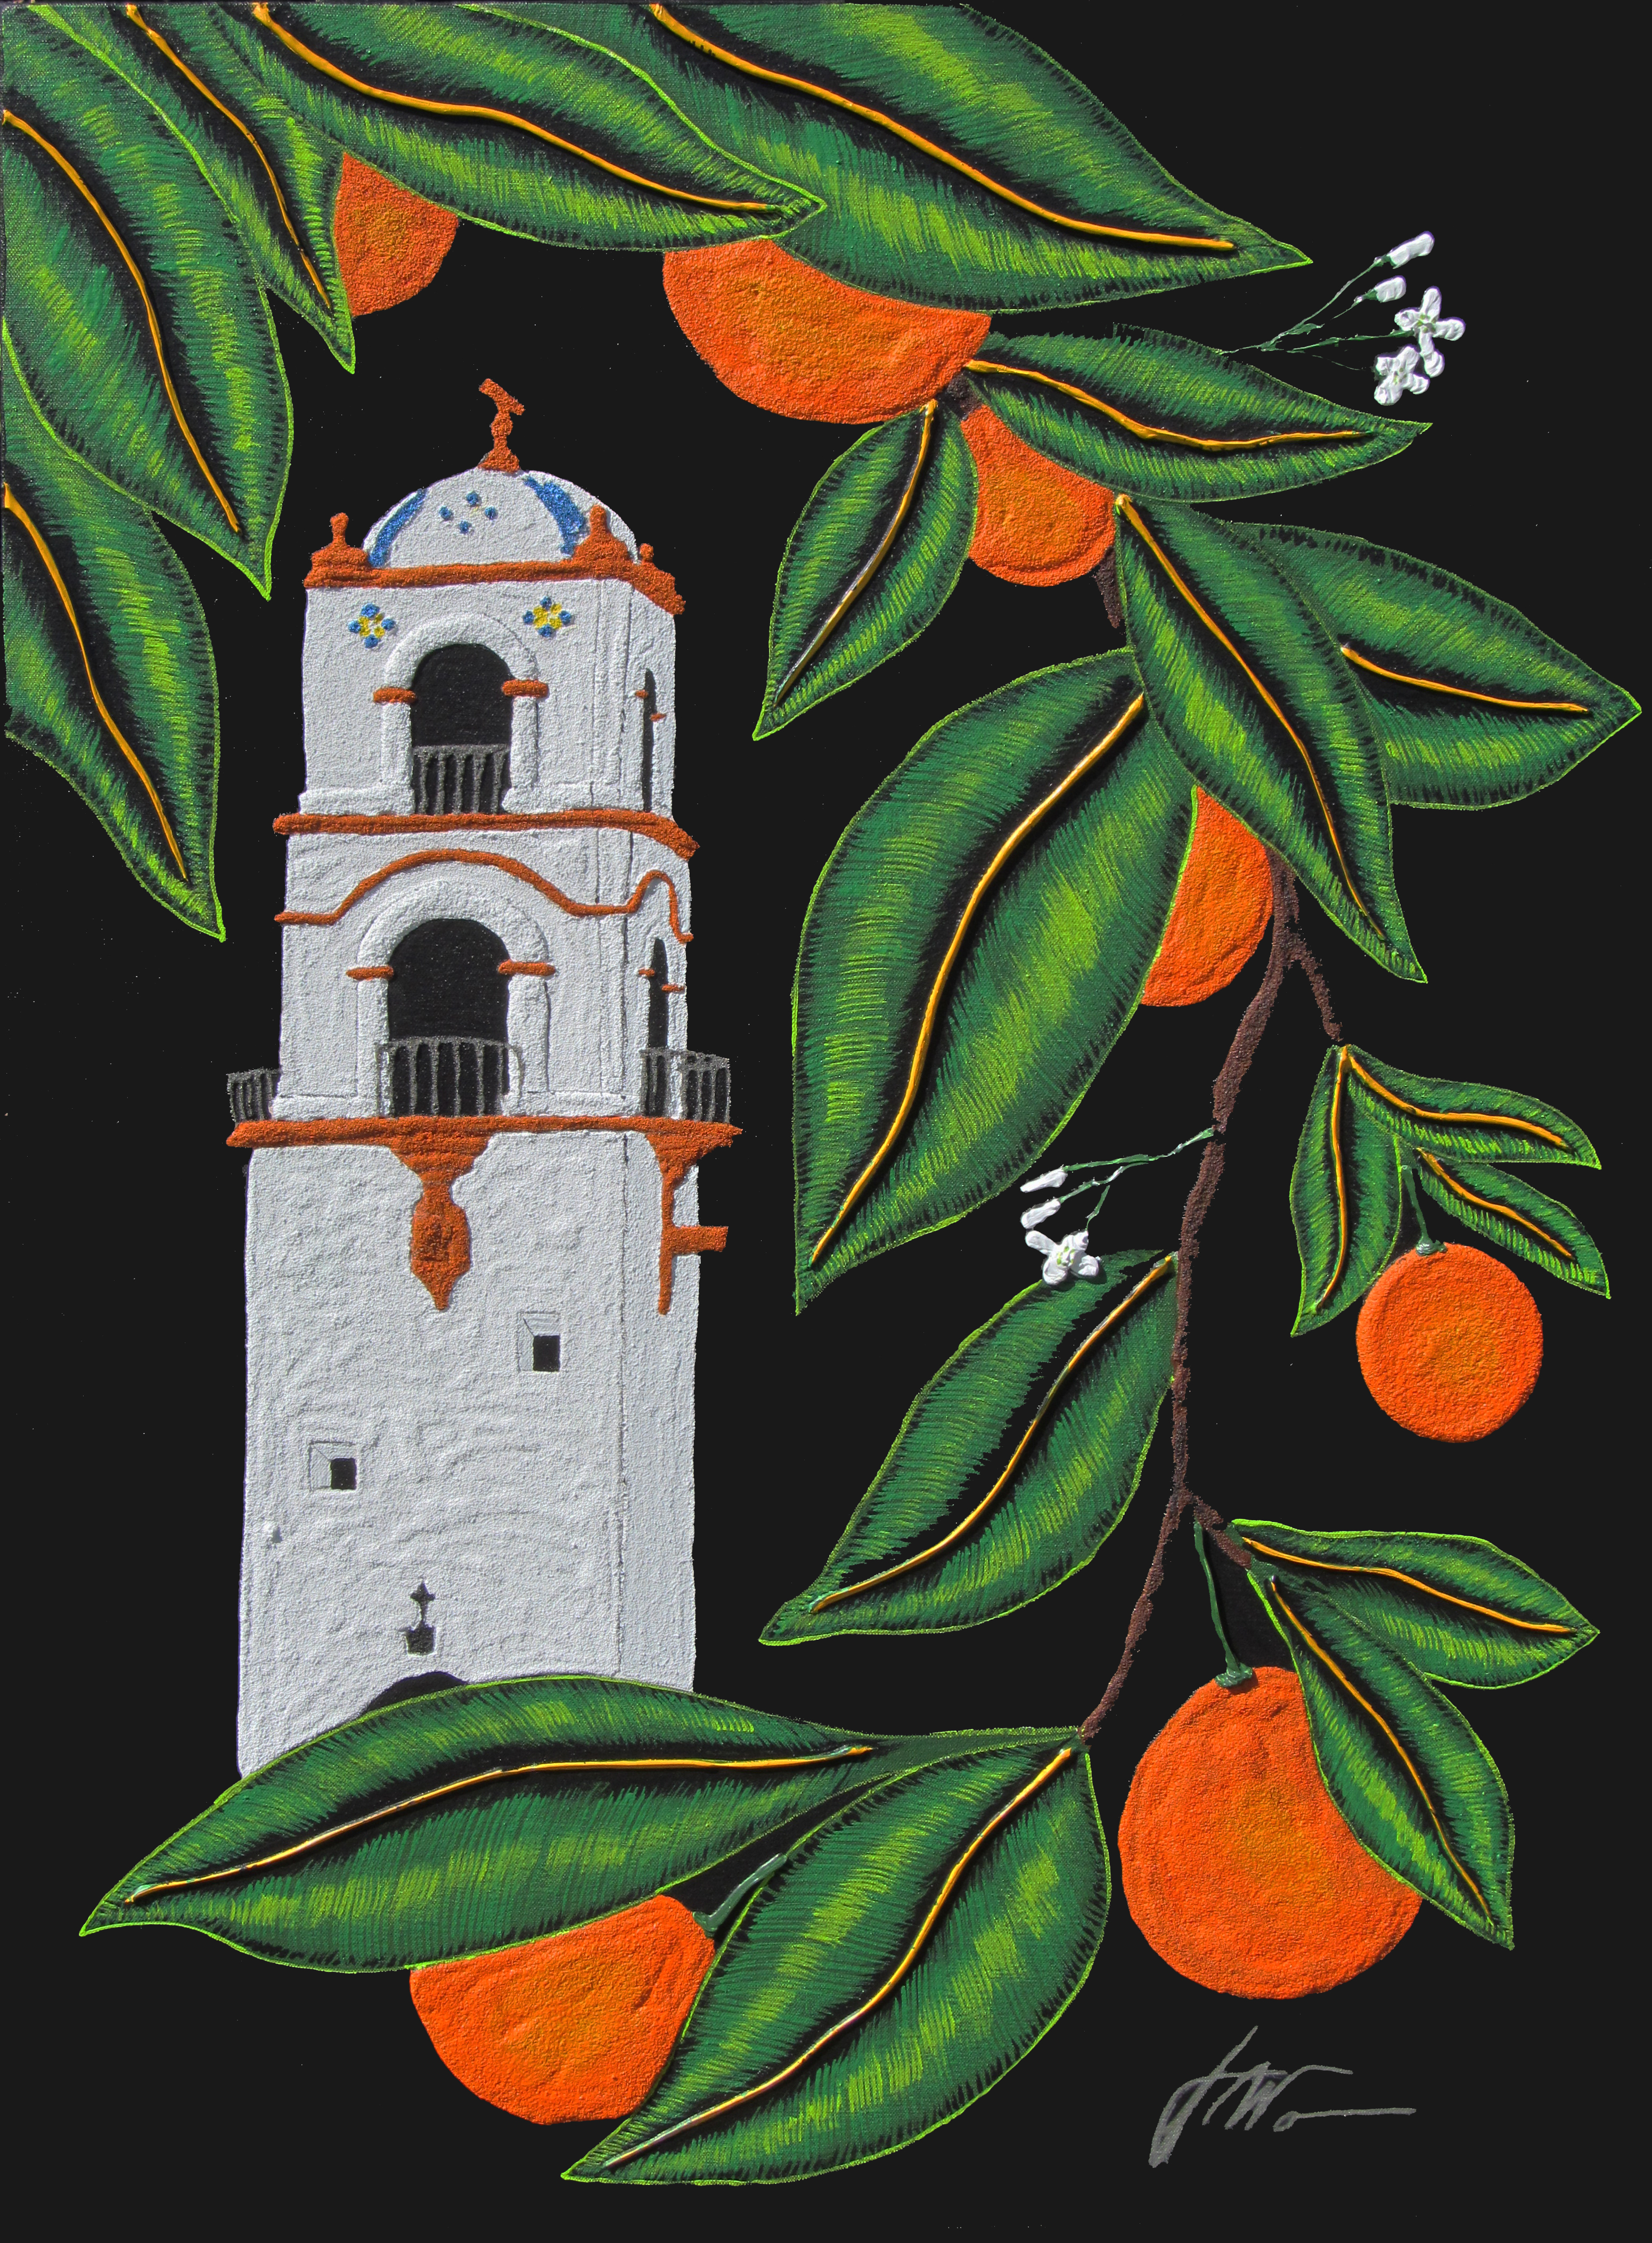 oranges-of-ojai.jpg